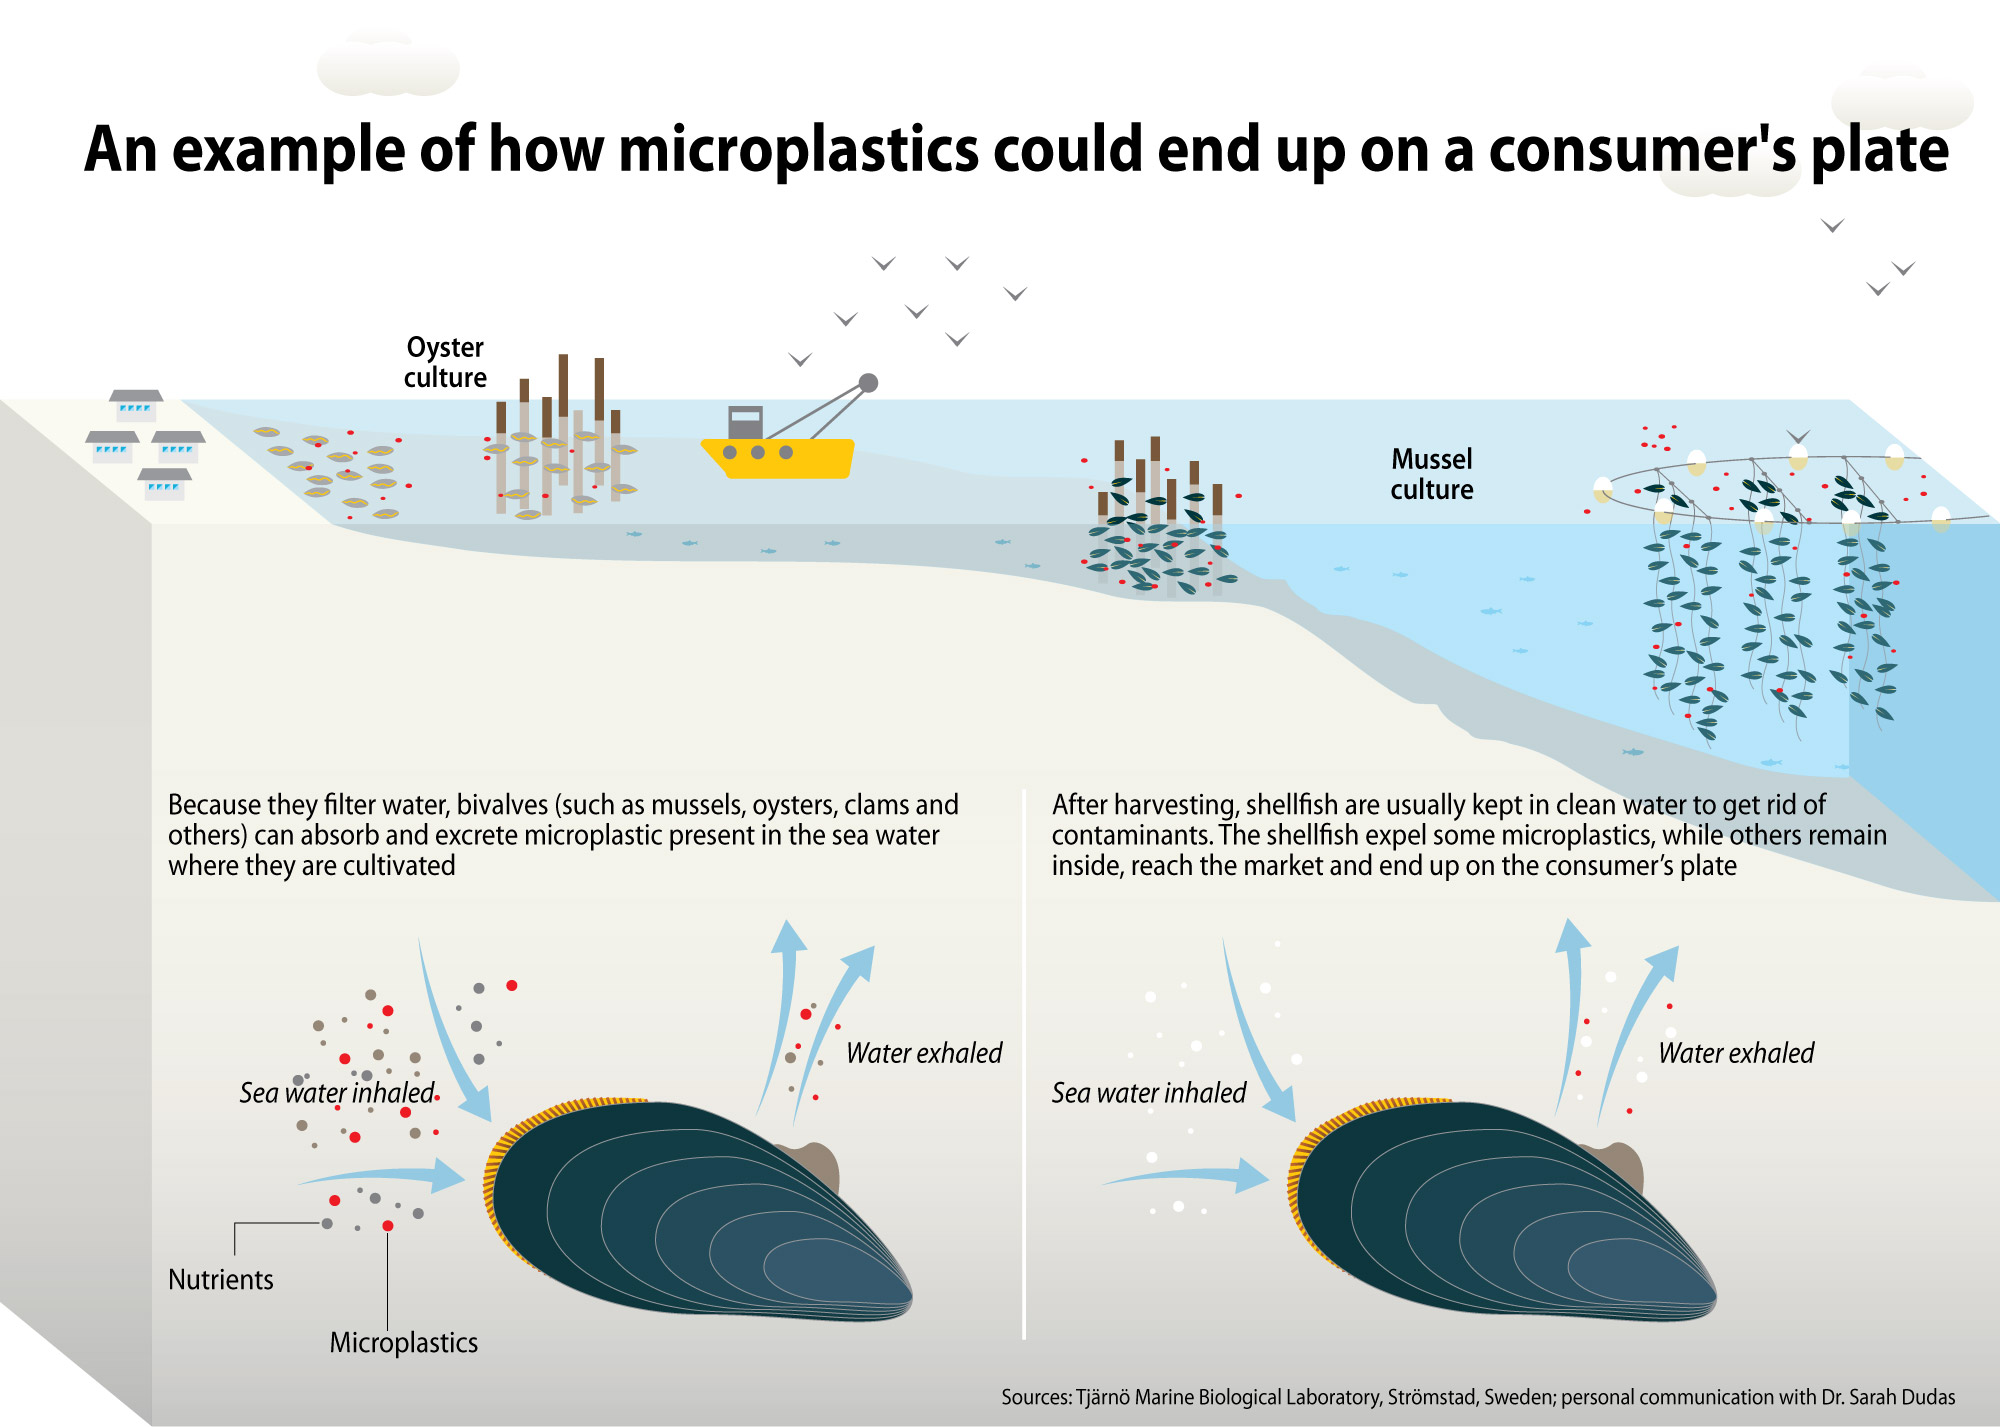 how microplastic could end up on a consumer's plate